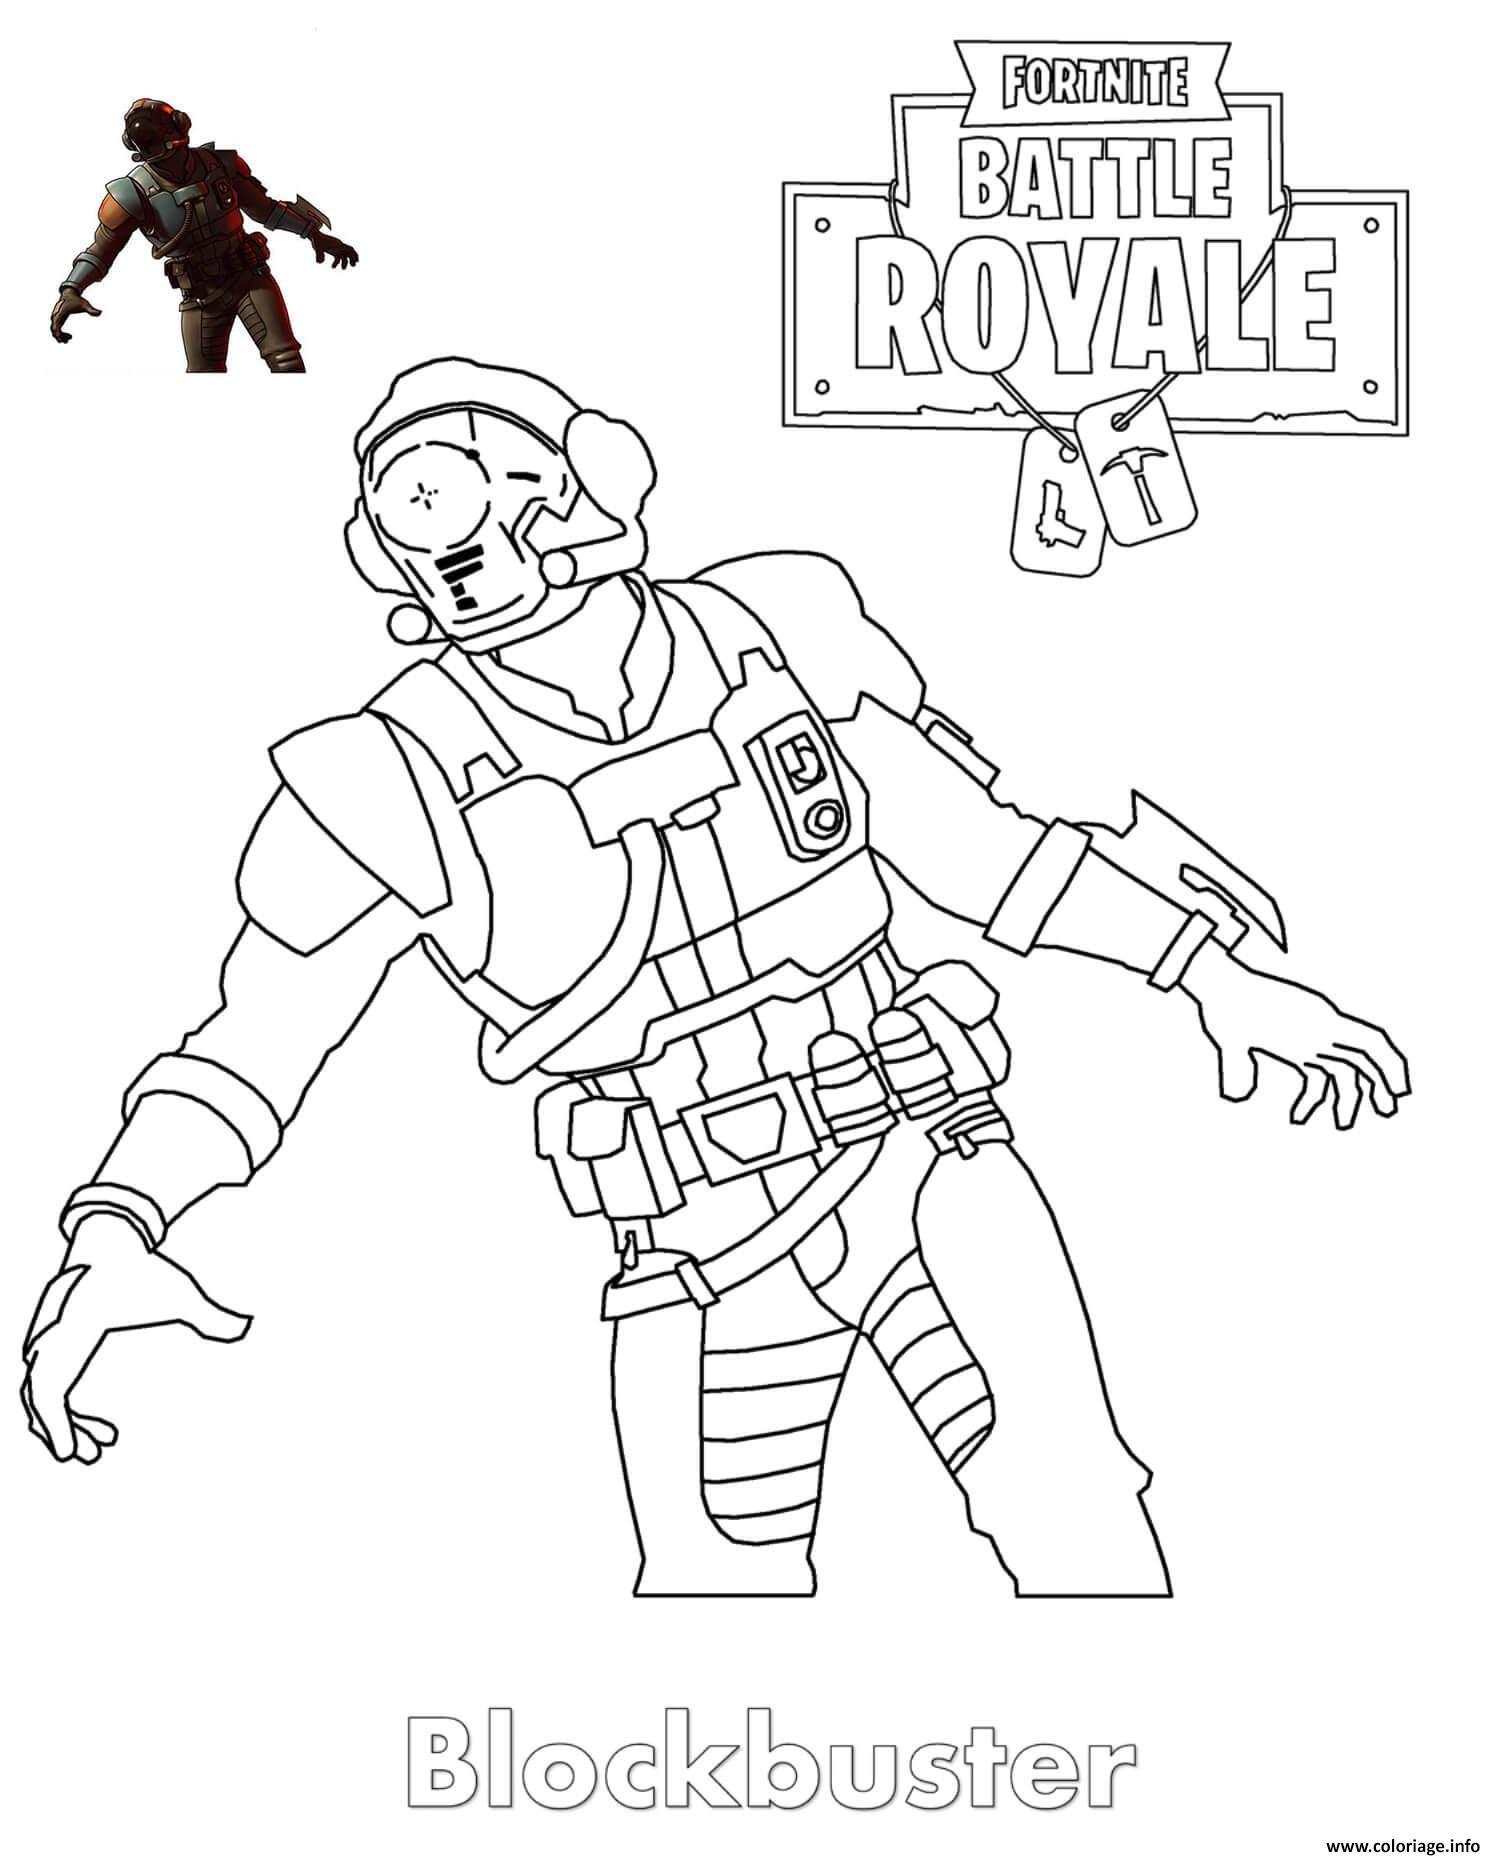 Coloriage De fortnite A Imprimer Gratuitement Best Of Coloriage Blockbuster fortnite Skin Jecolorie Of Coloriage De fortnite A Imprimer Gratuitement